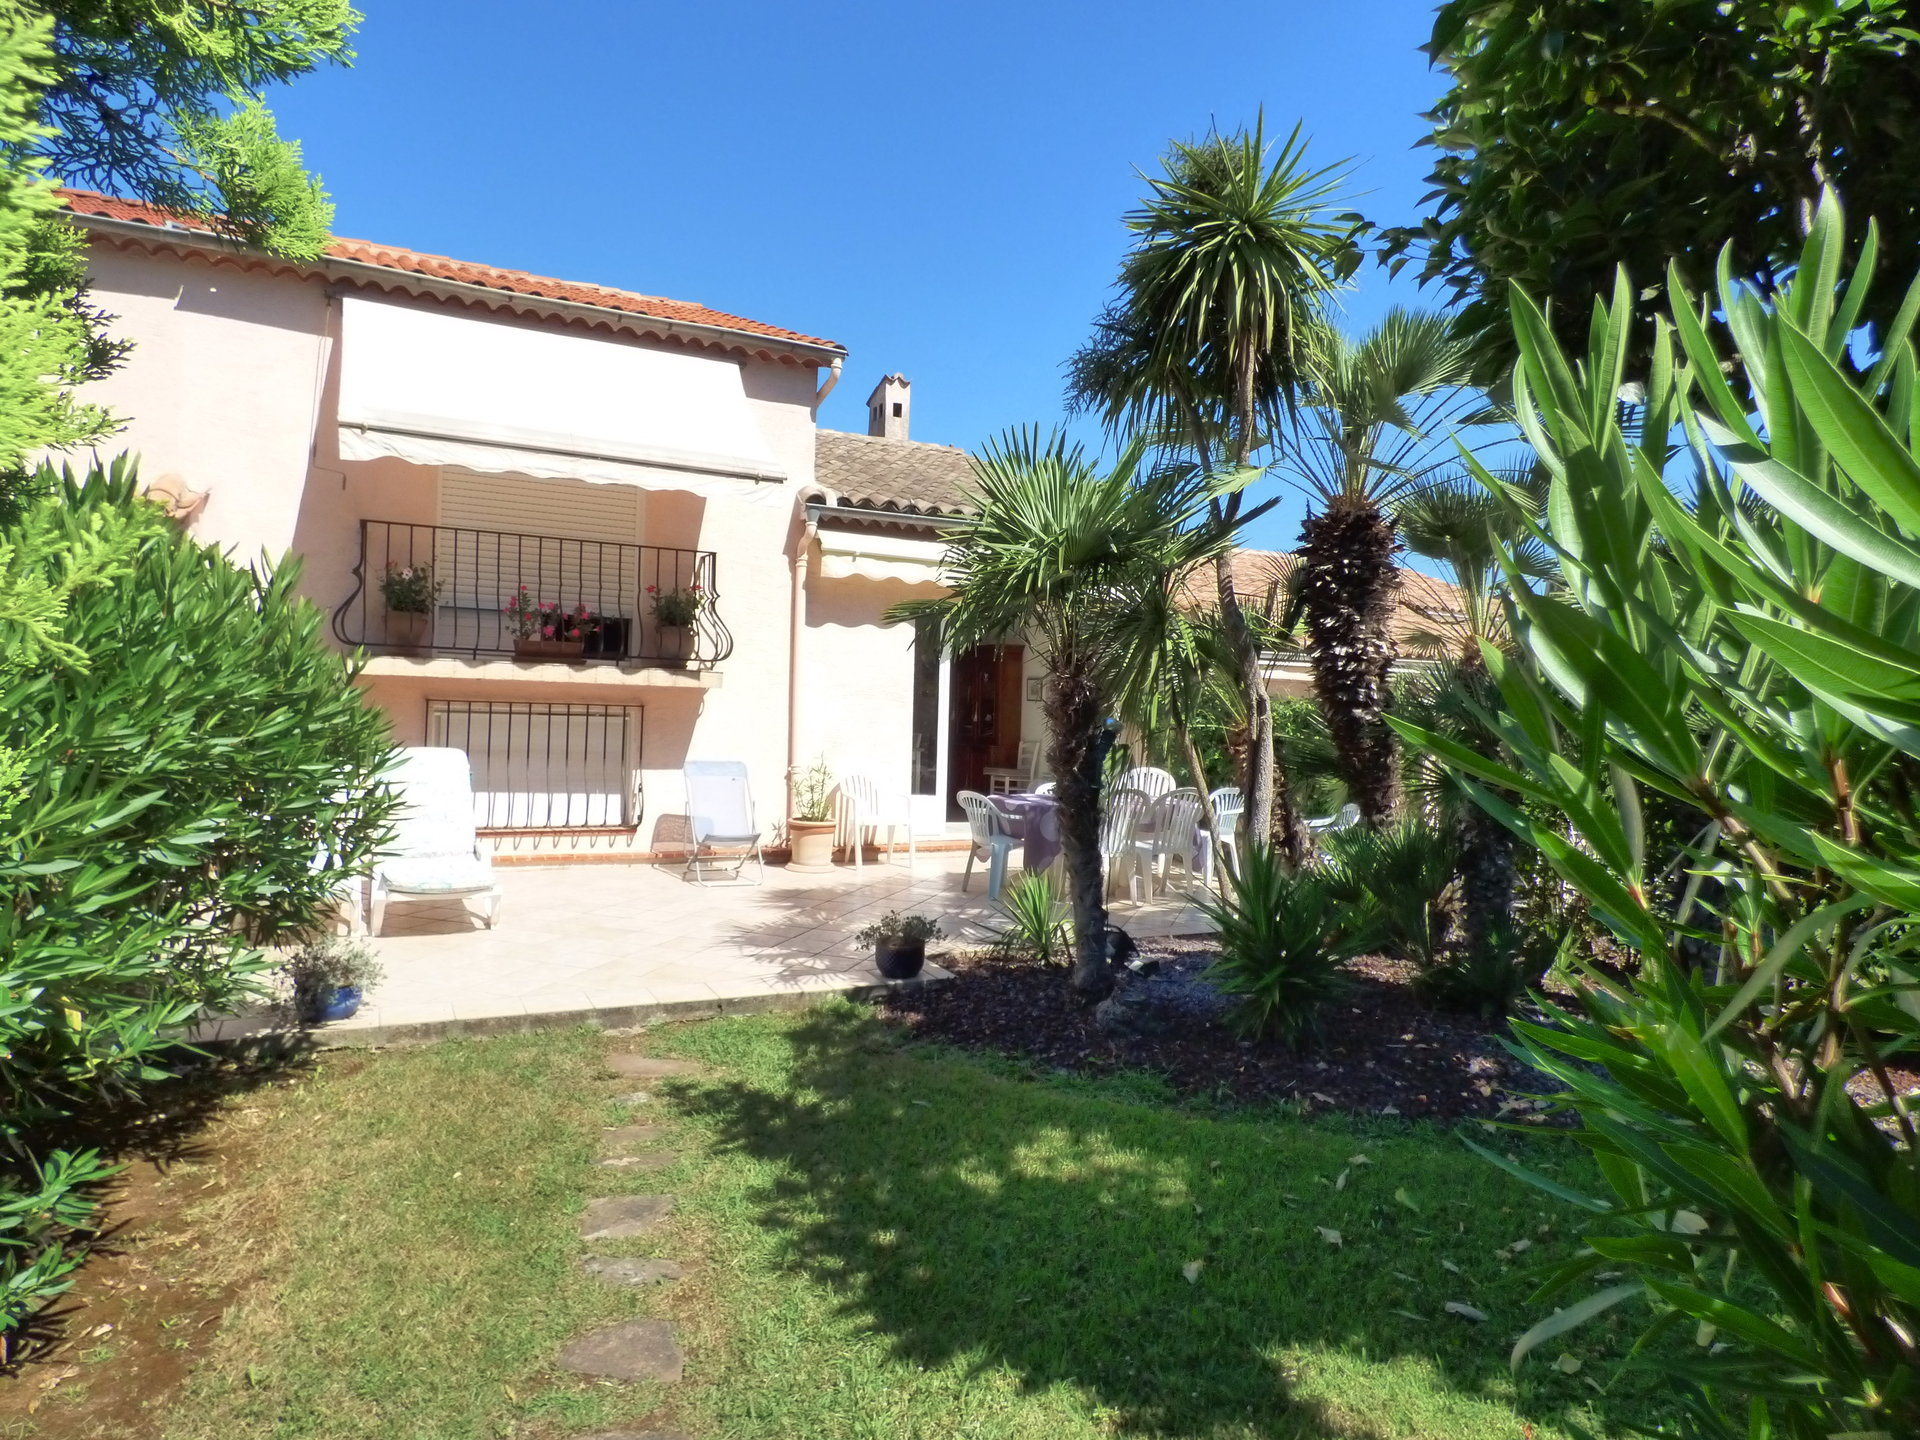 BIOT Proche Sophia House 5 rooms 102 m2